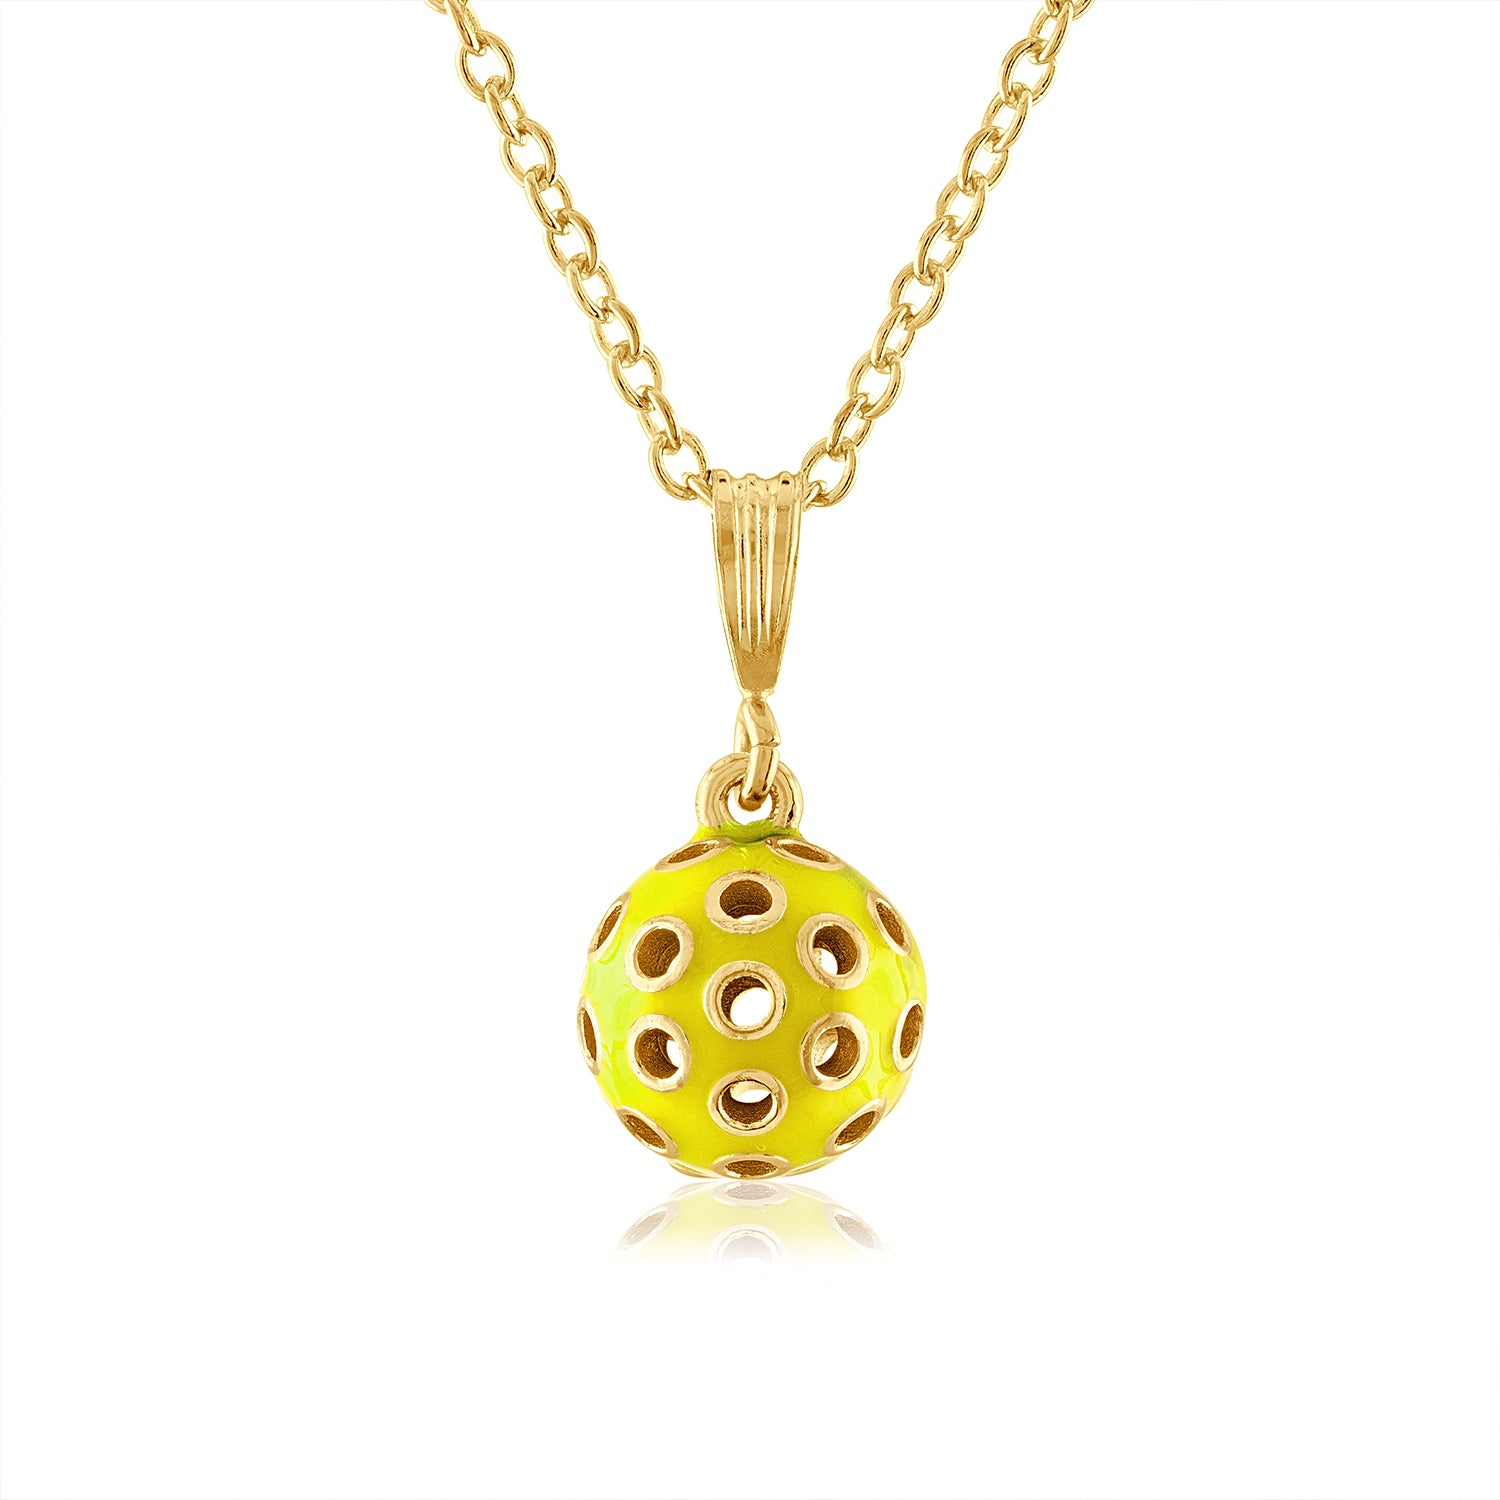 3-D Pickle Ball Pendants